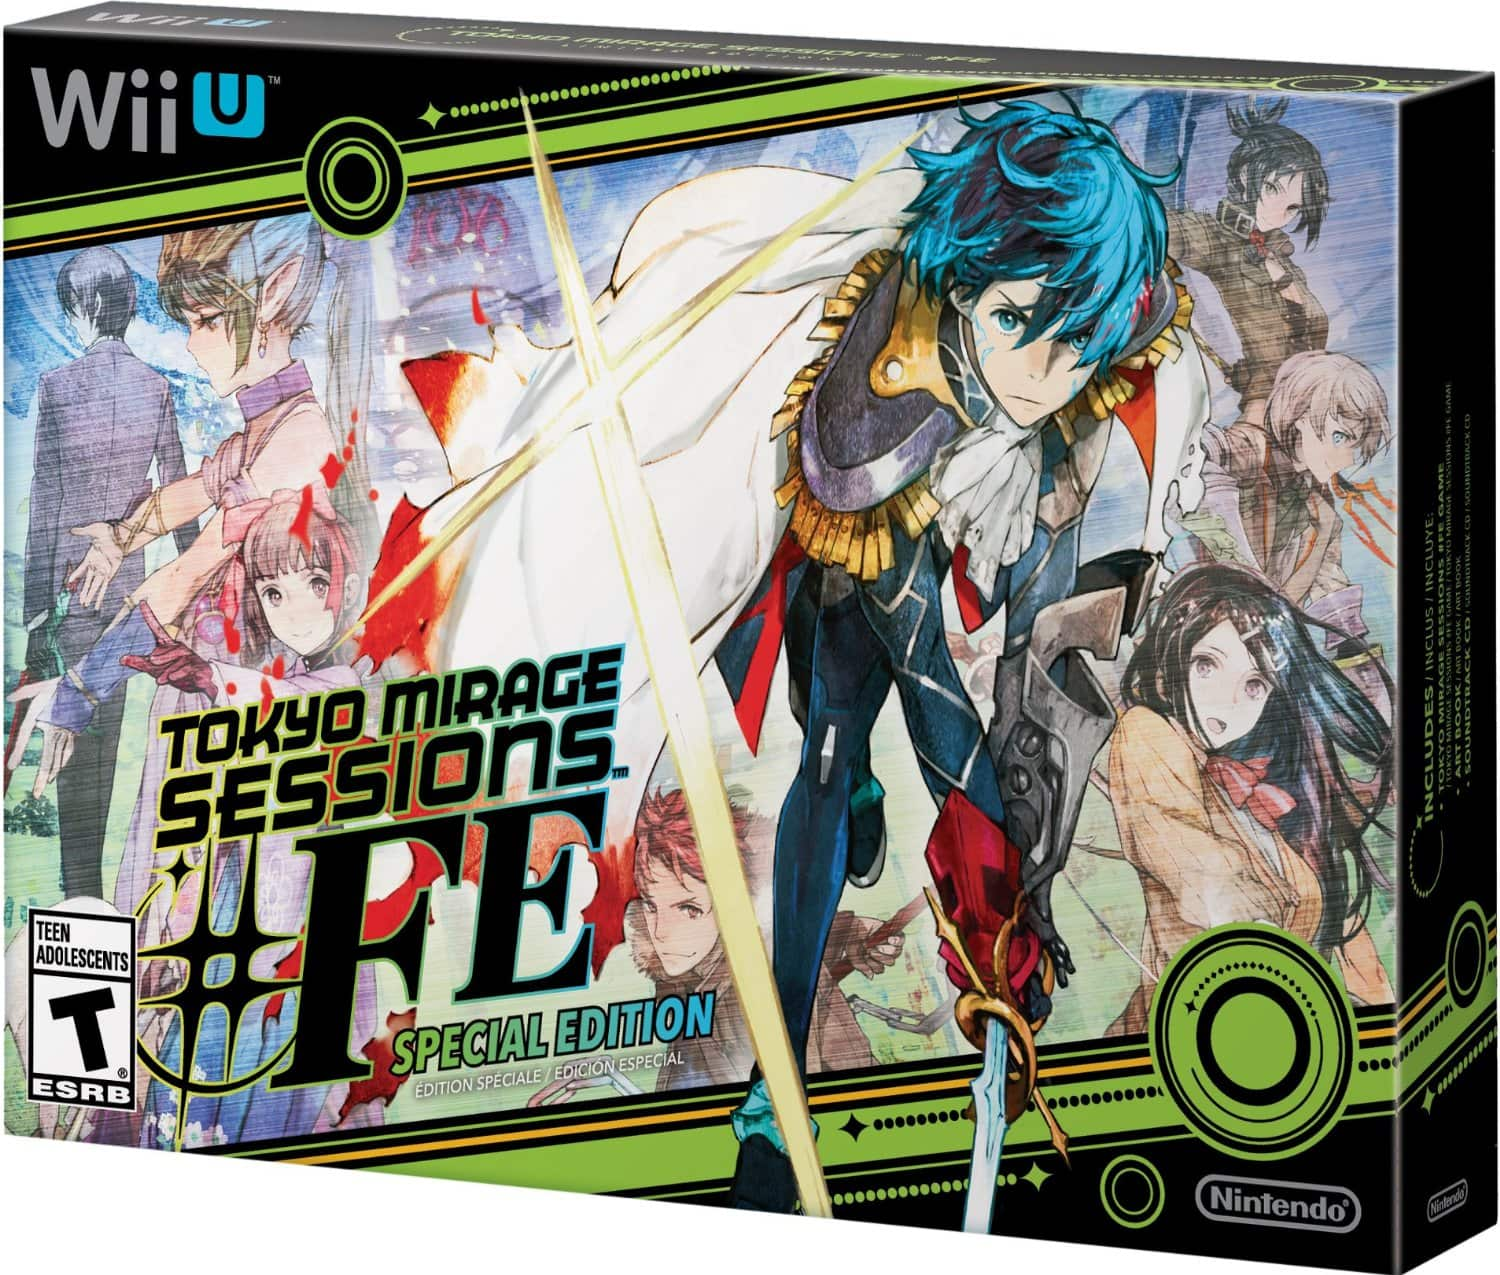 GCU Members: Tokyo Mirage Sessions #FE Special Edition (Wii U) $63.99 Shipped @ Best Buy